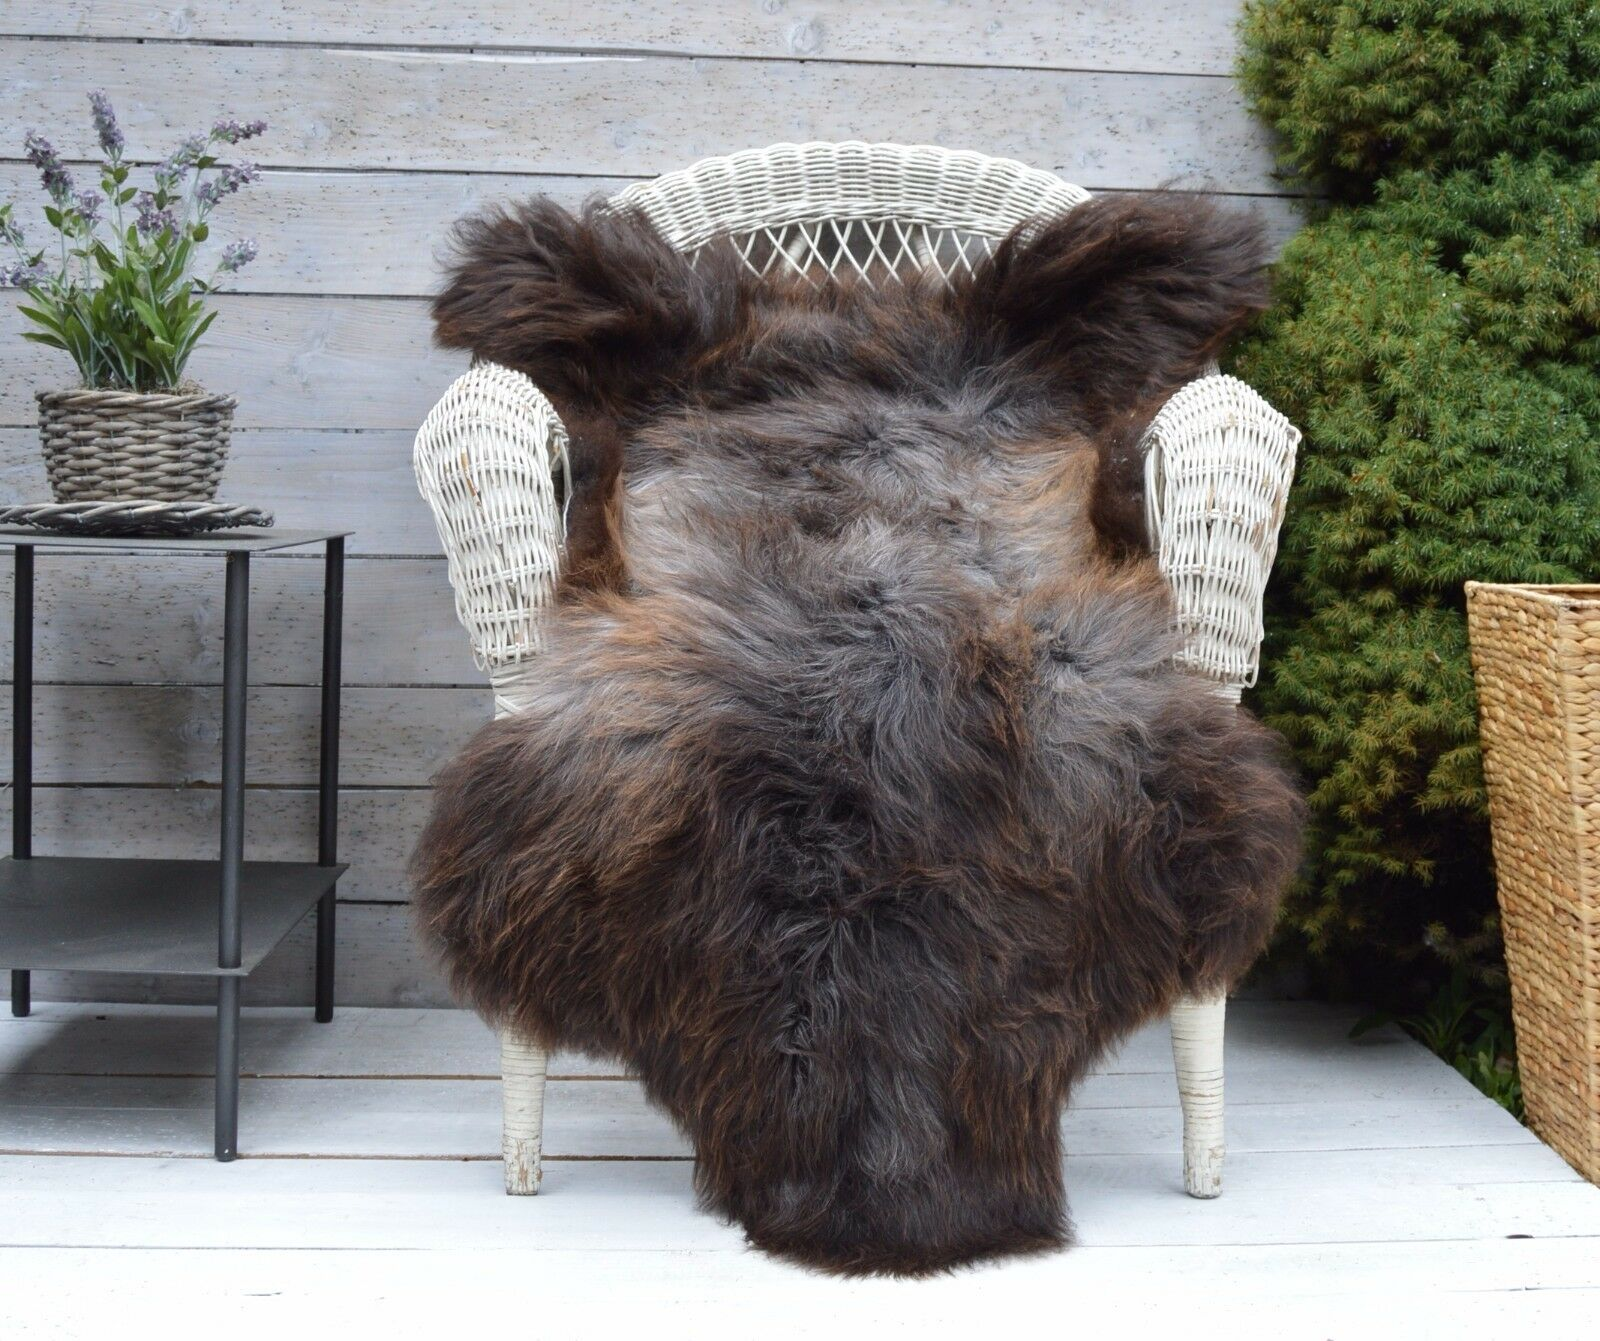 Luxury Sheepskin Rug, Throw, Blanket, Blanket, Blanket, Very Rare Breed Multicolour - Größe XL bf3e14